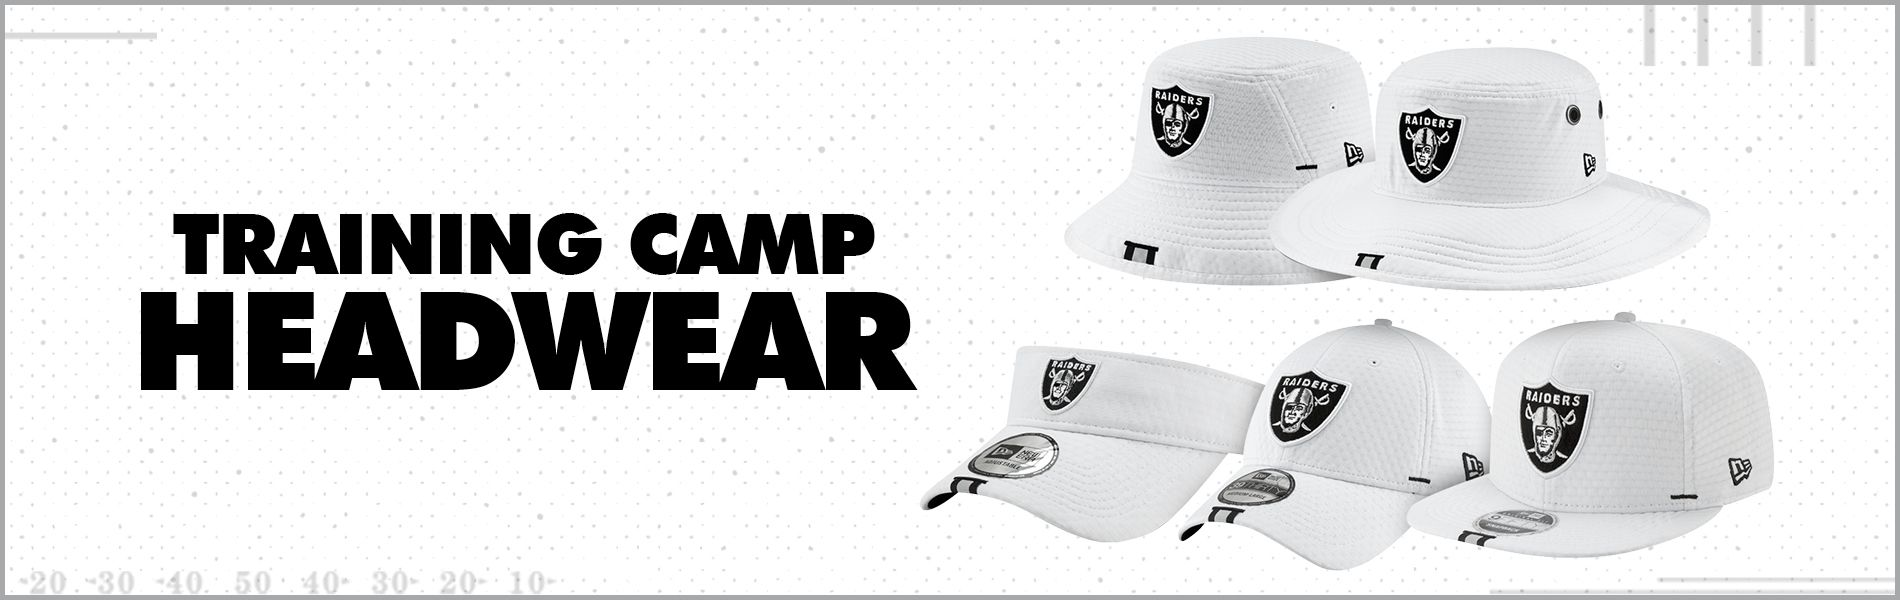 The Raider Image The Official Store for Oakland Raiders Merchandise